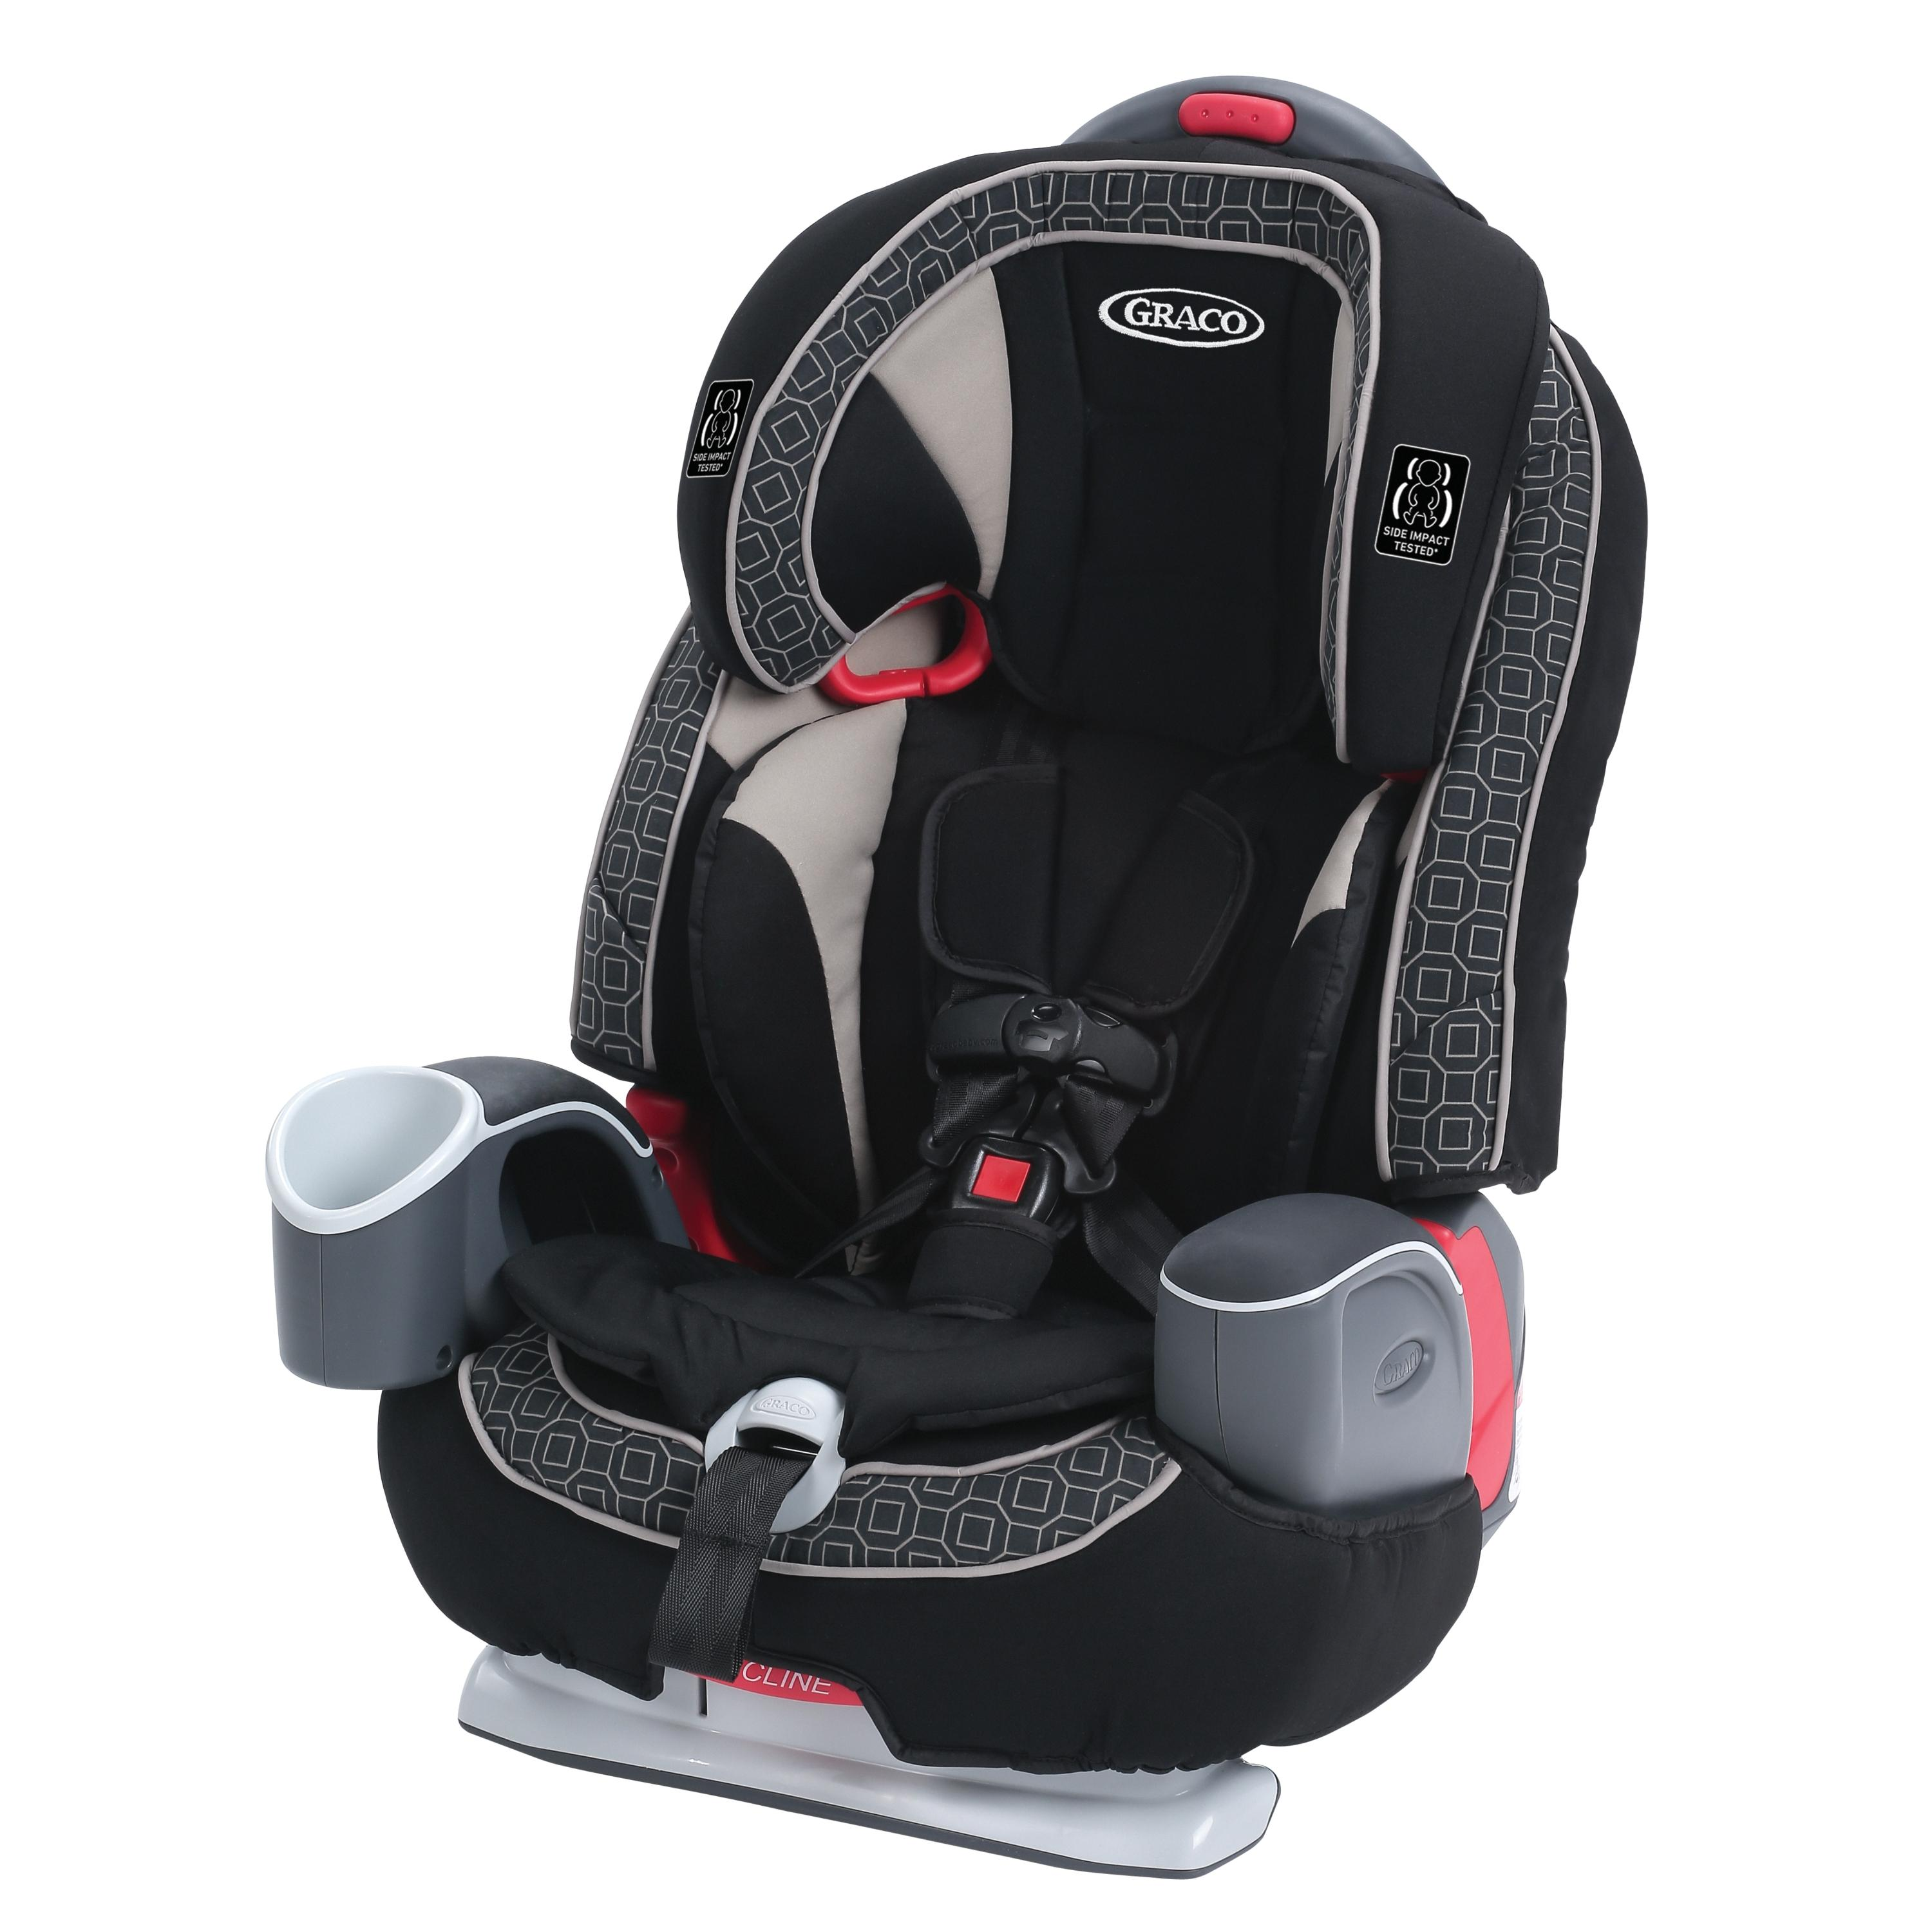 Amazon.com : Graco Nautilus 65 LX 3-in-1 Harness Booster ...